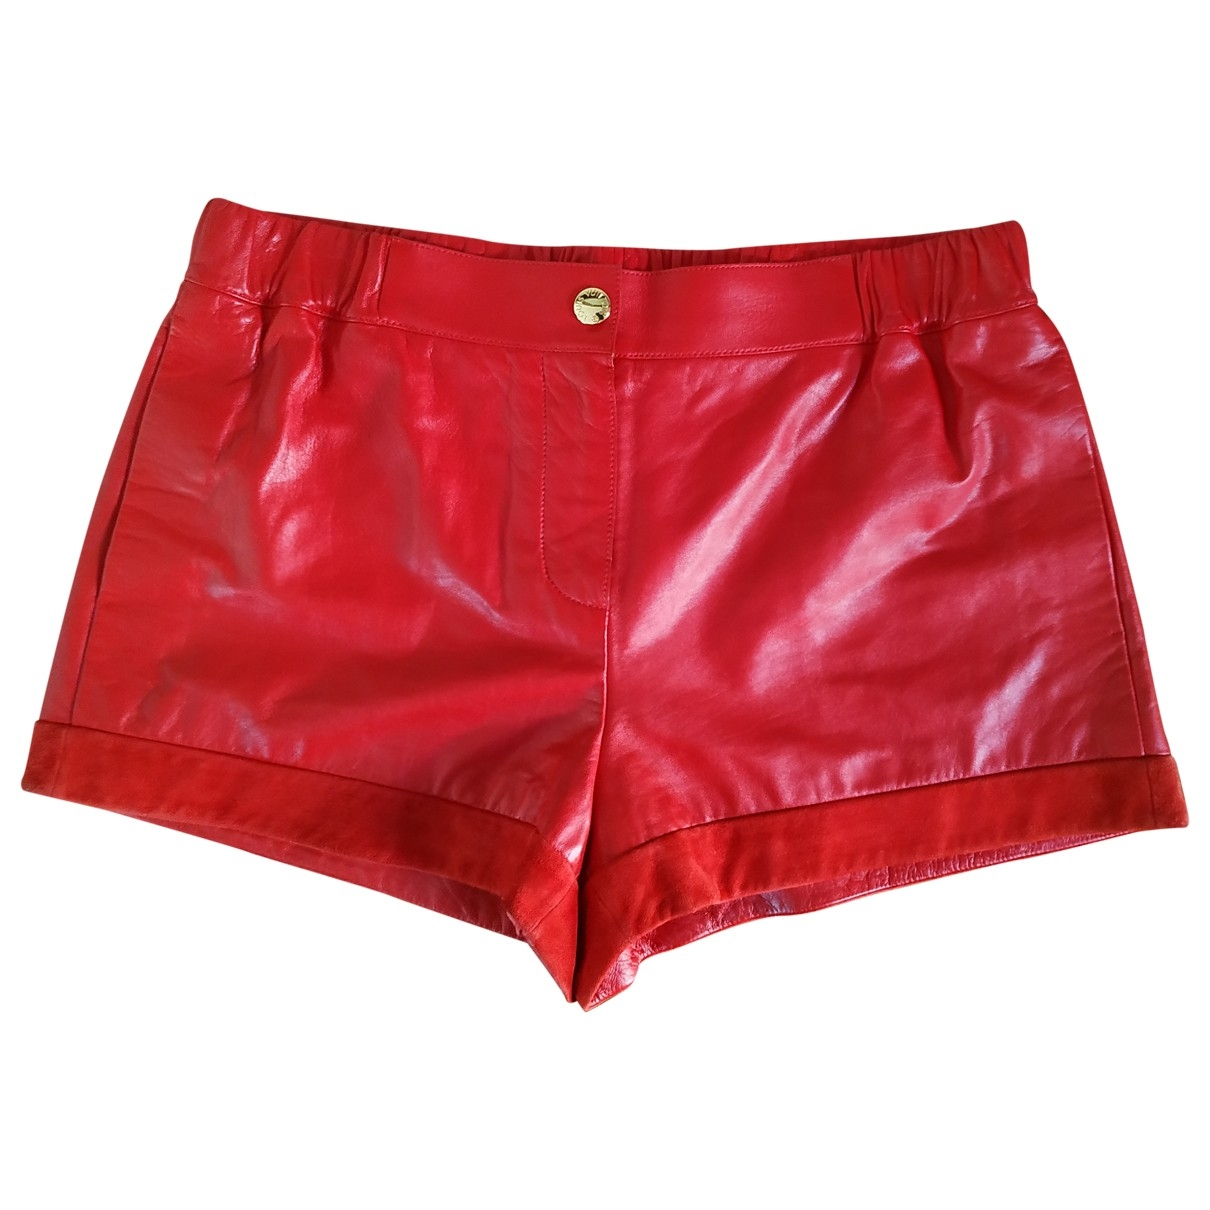 Louis Vuitton \N Red Leather Shorts for Women 40 FR